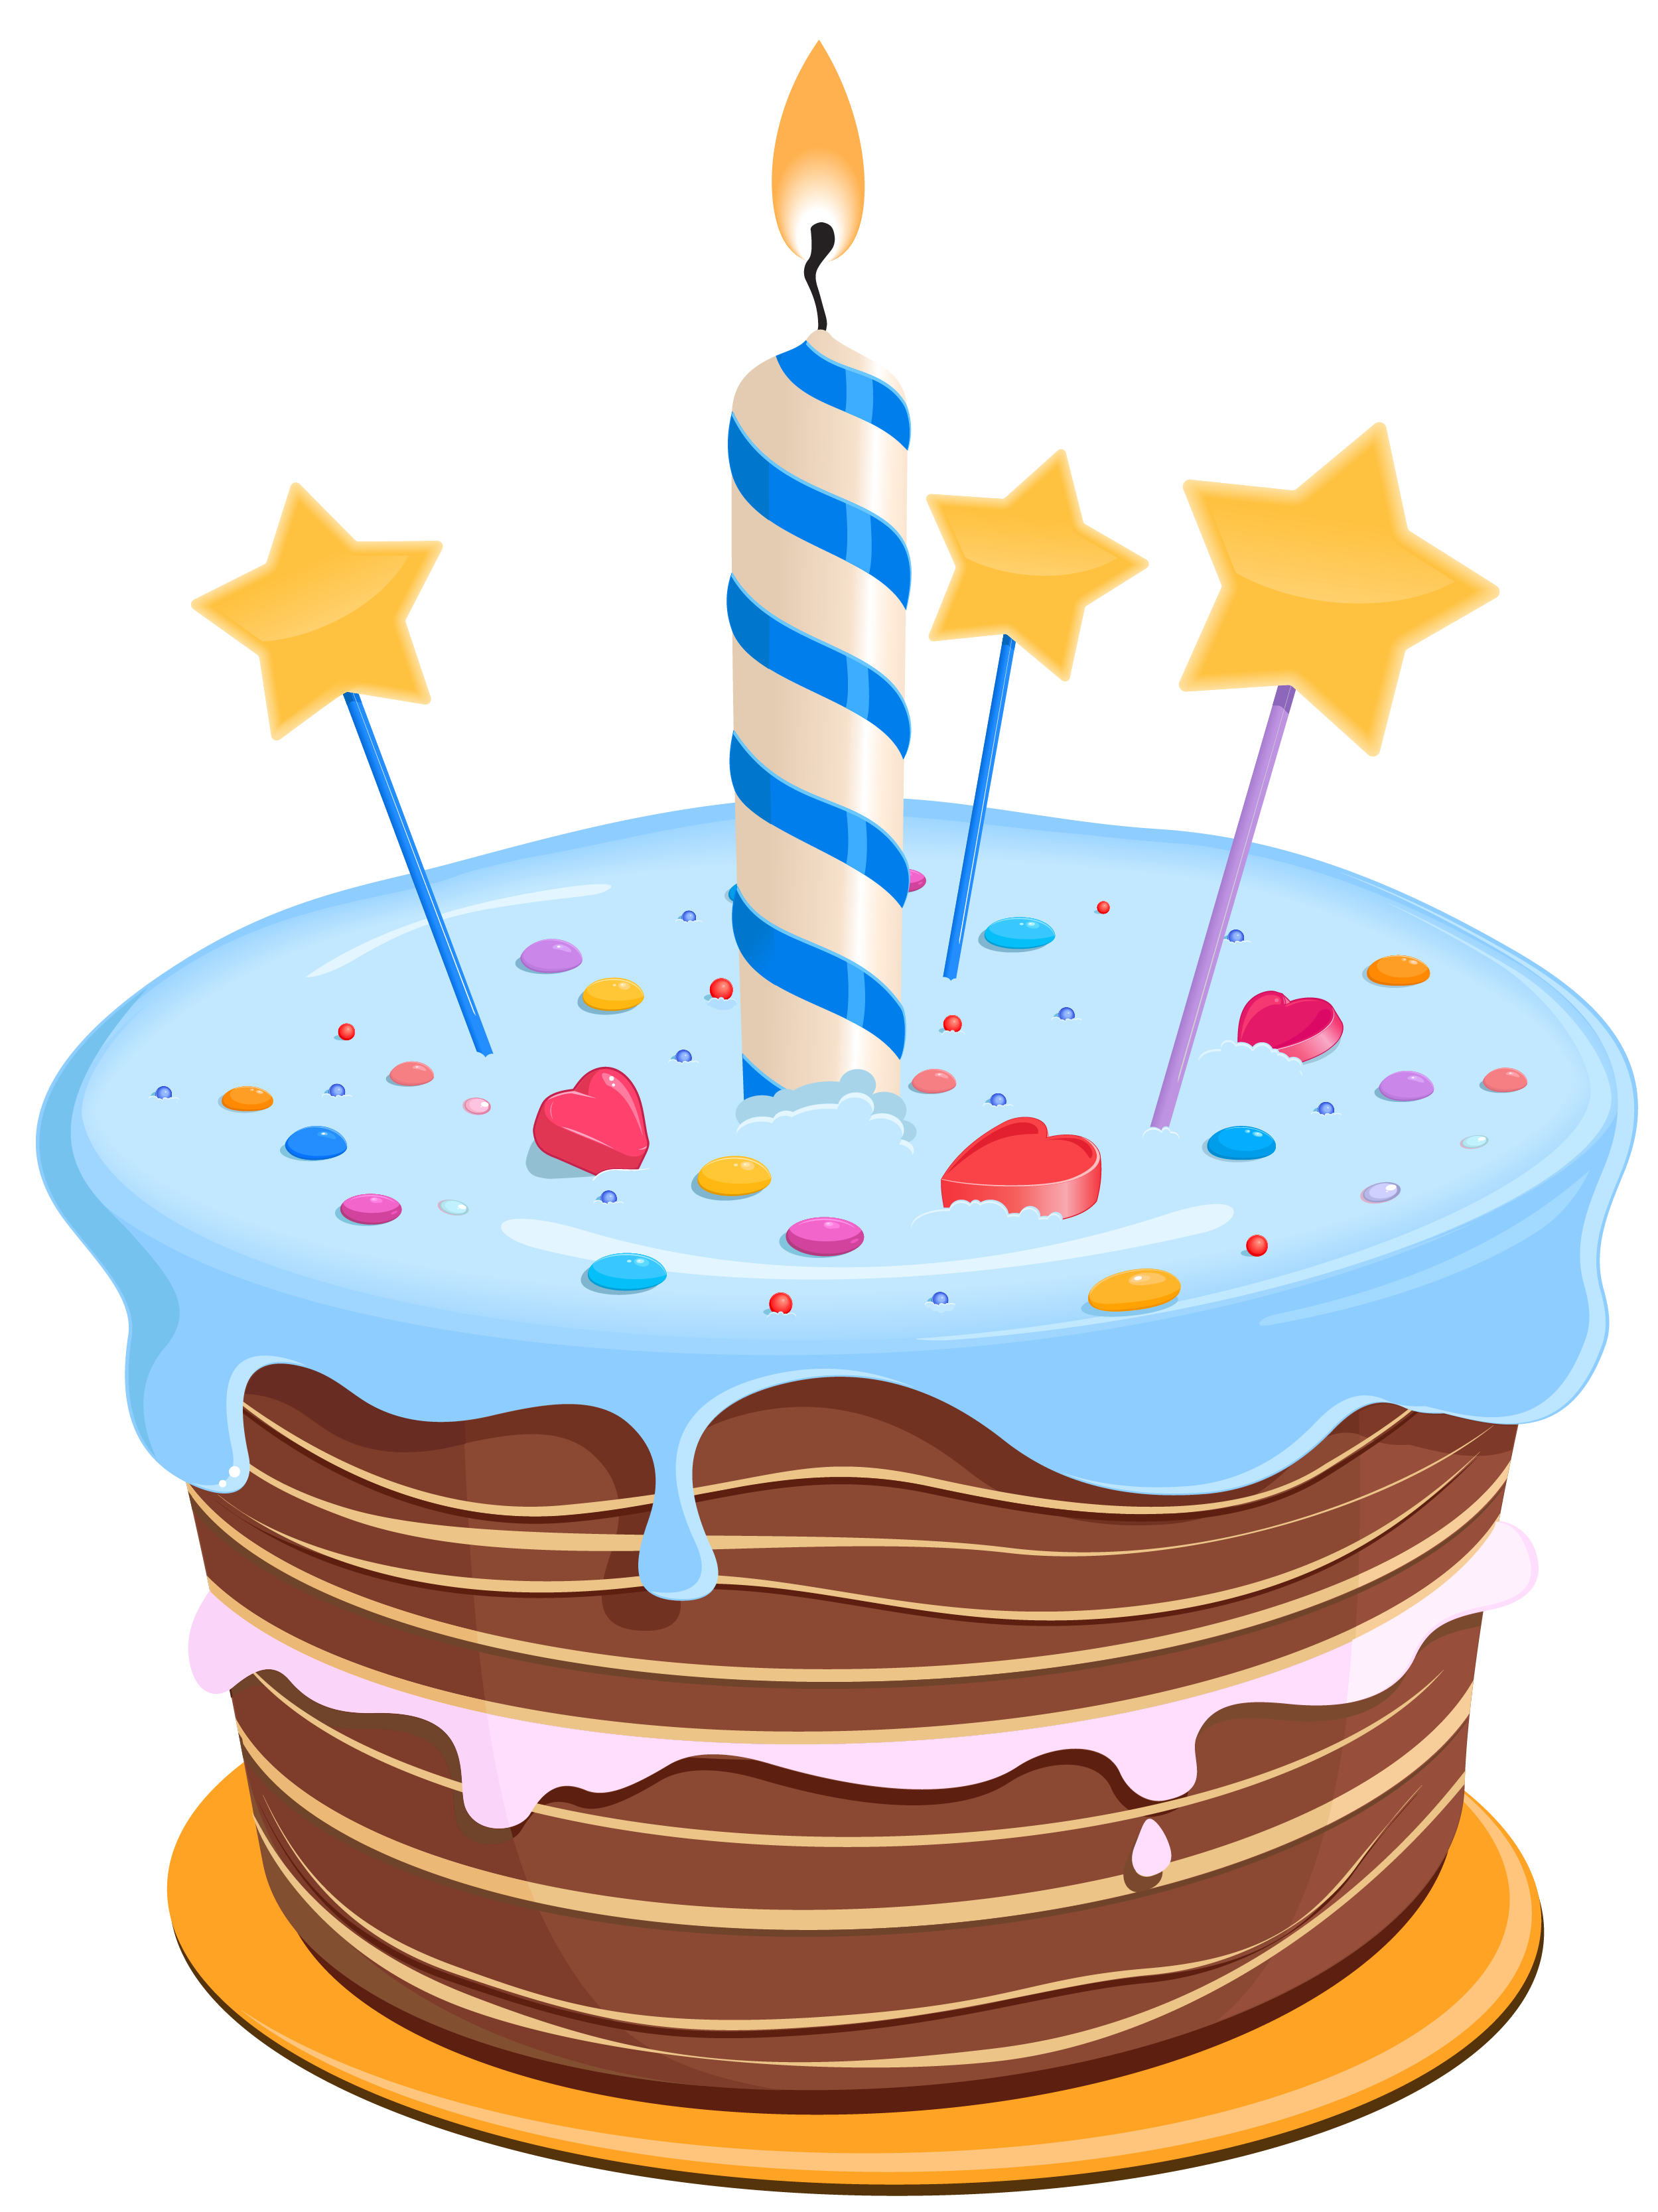 Birthday Cake Png Clipart PNG Image - Birthday Cake PNG